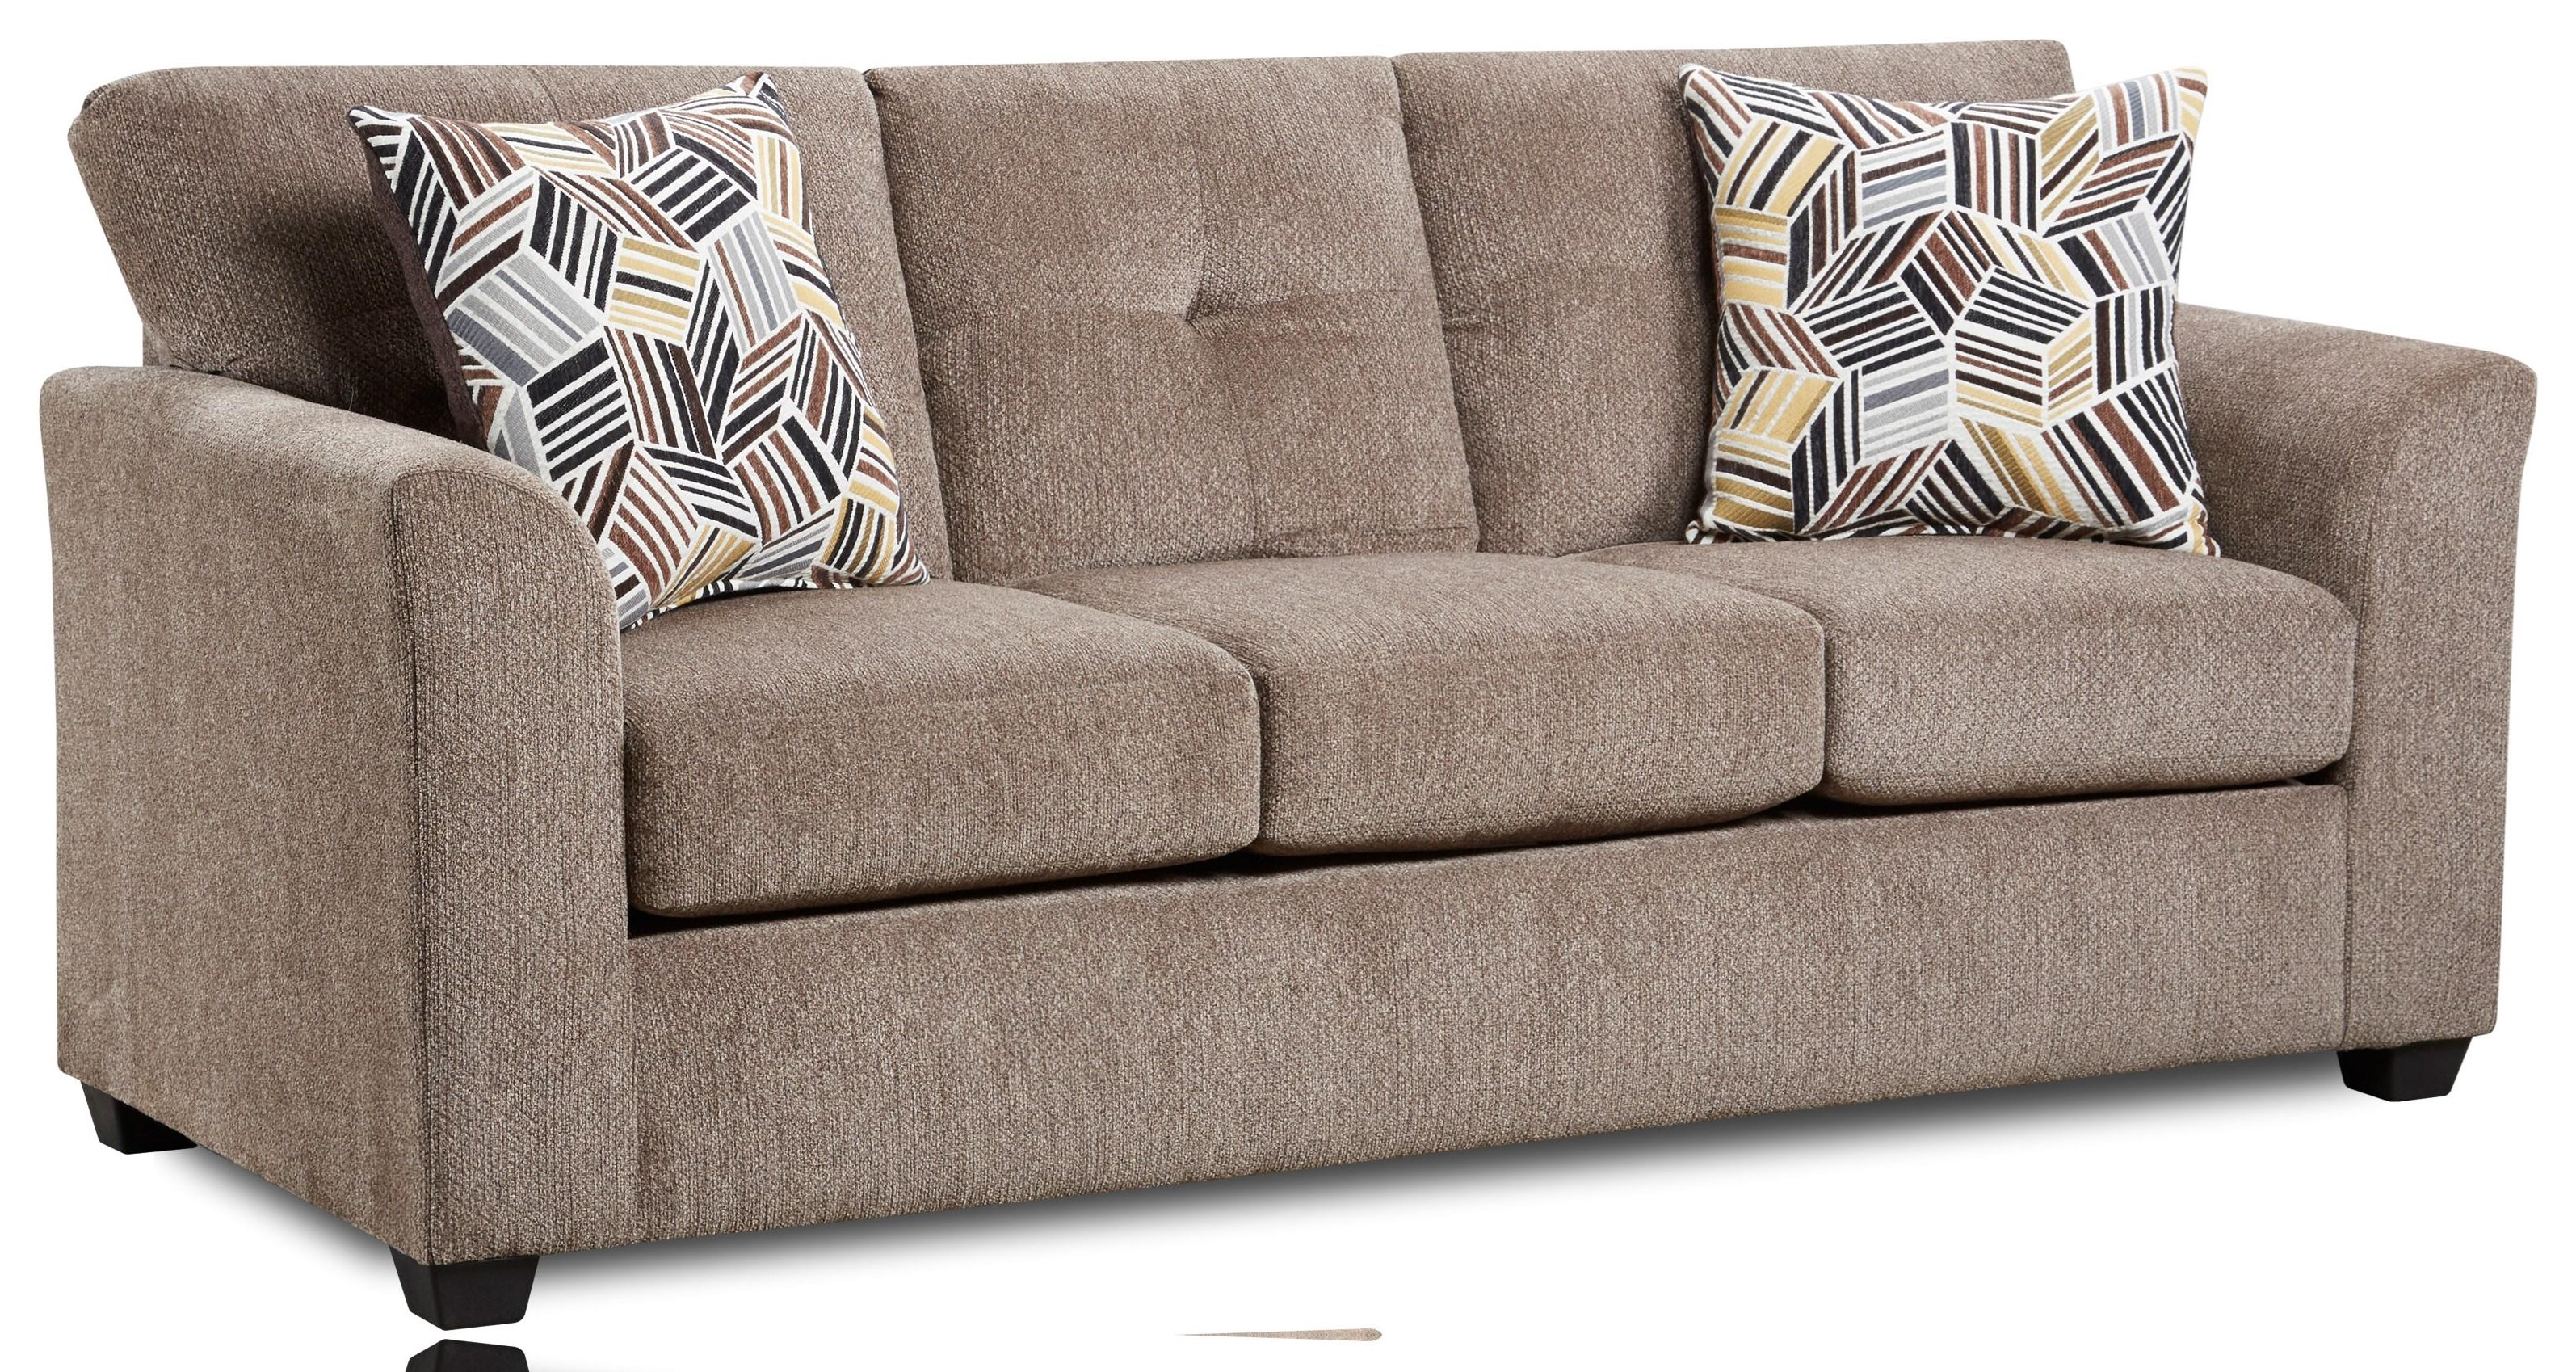 3003 KENNEDY Cocoa Sofa by Washington Brothers Furniture at Furniture Fair - North Carolina